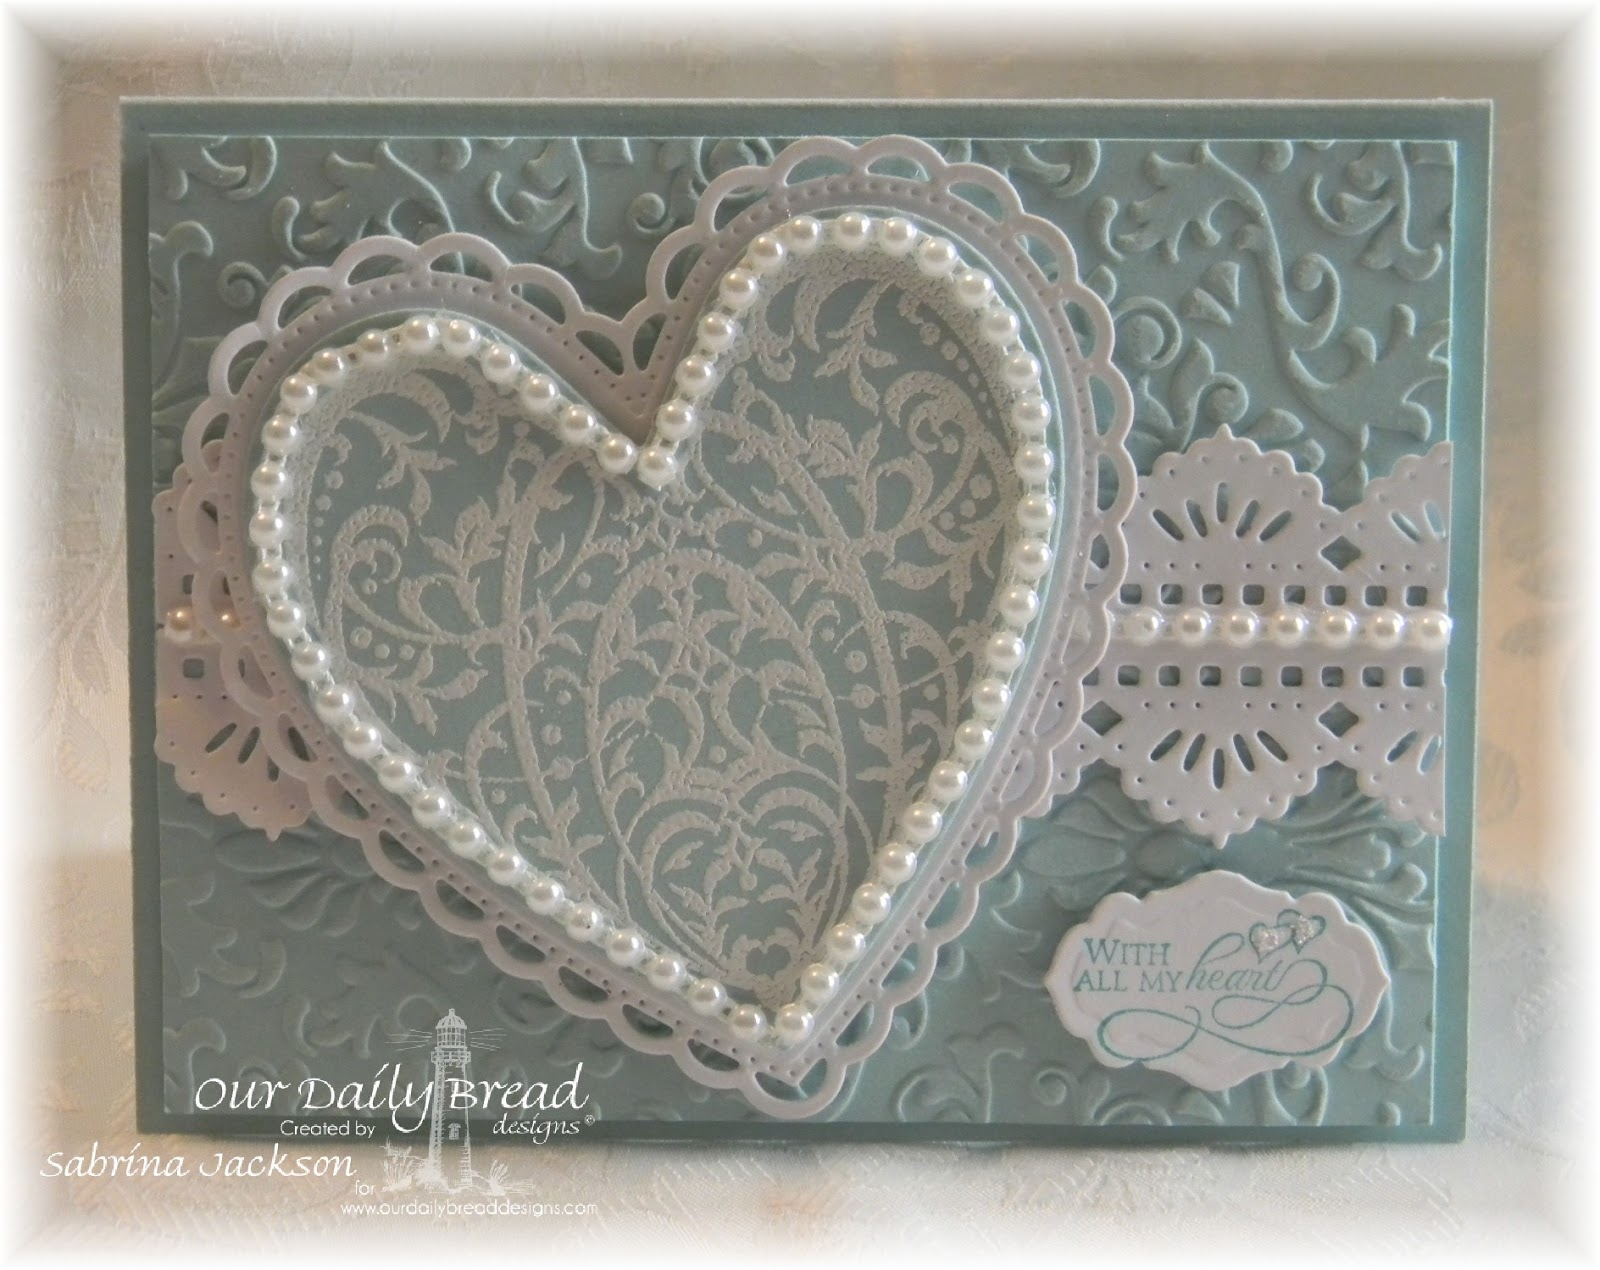 Stamps - Our Daily Bread Designs Bless Your Heart, ODBD Custom Beautiful Borders Dies, ODBD Ornate Hearts Die, ODBD  Custom Antique Labels & Border Dies